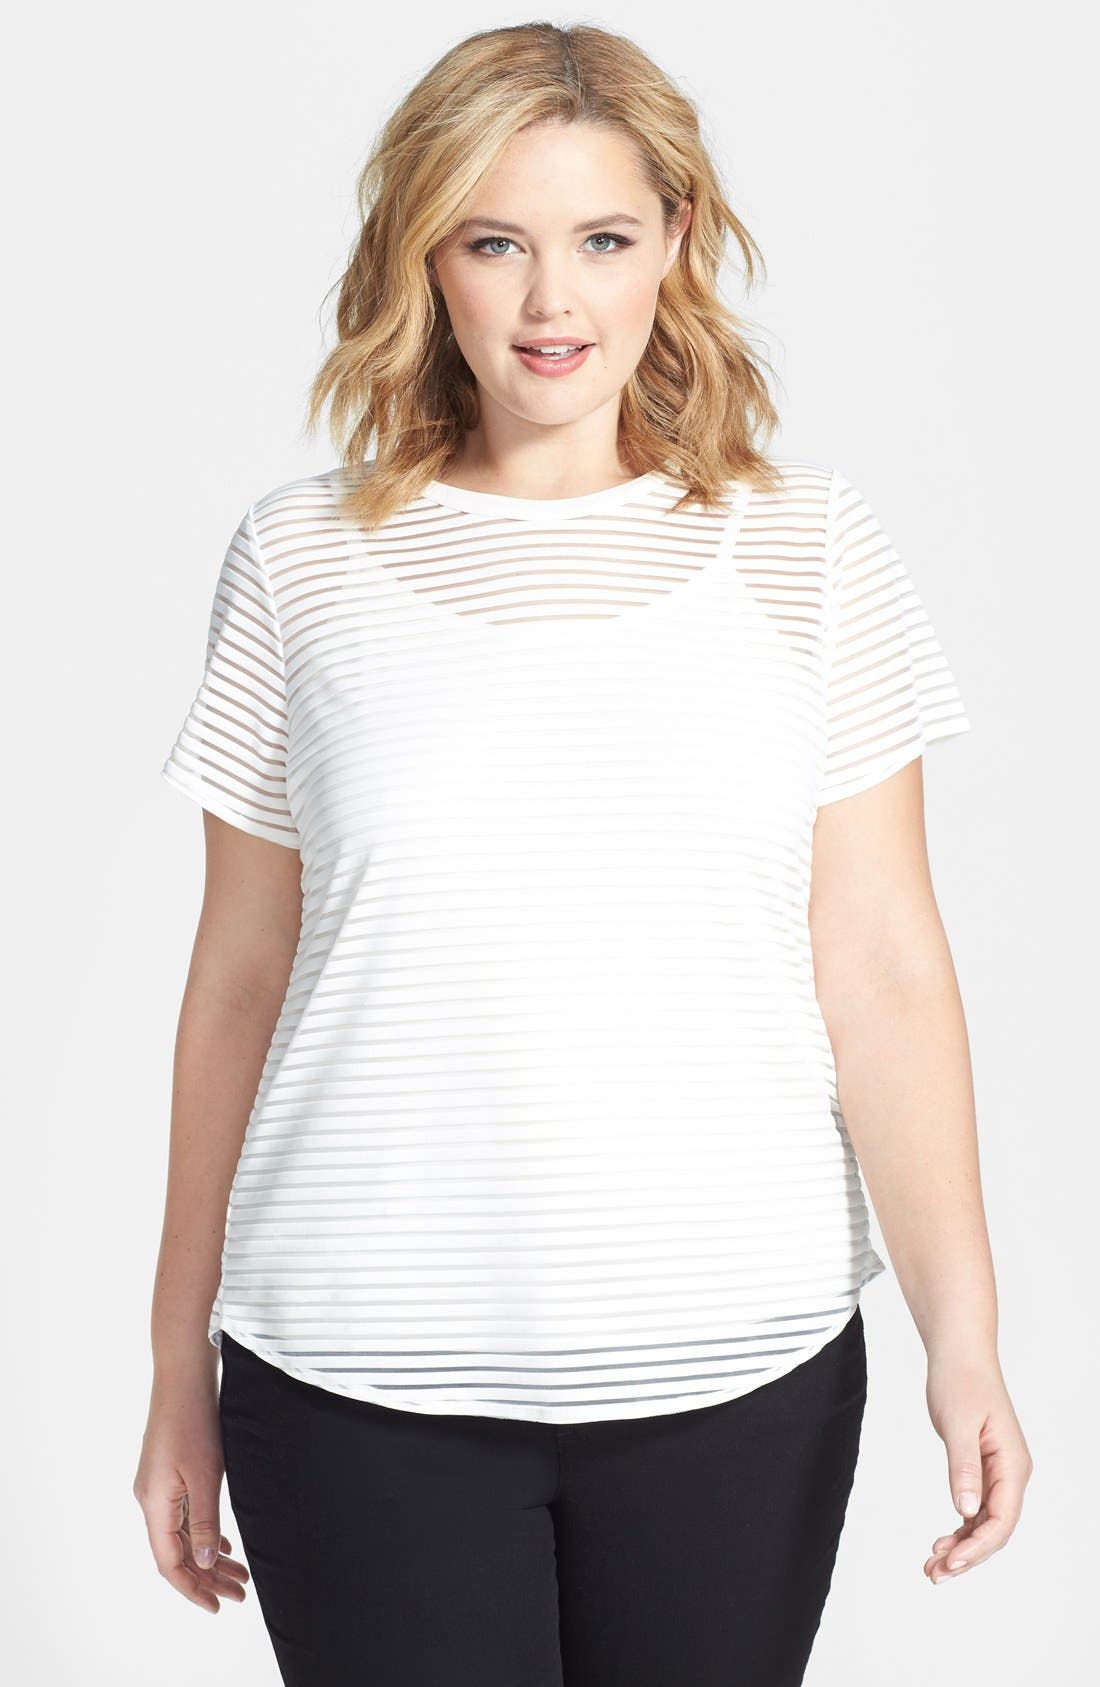 Main Image - Vince Camuto Sheer Stripe Tee & Camisole (Plus Size)